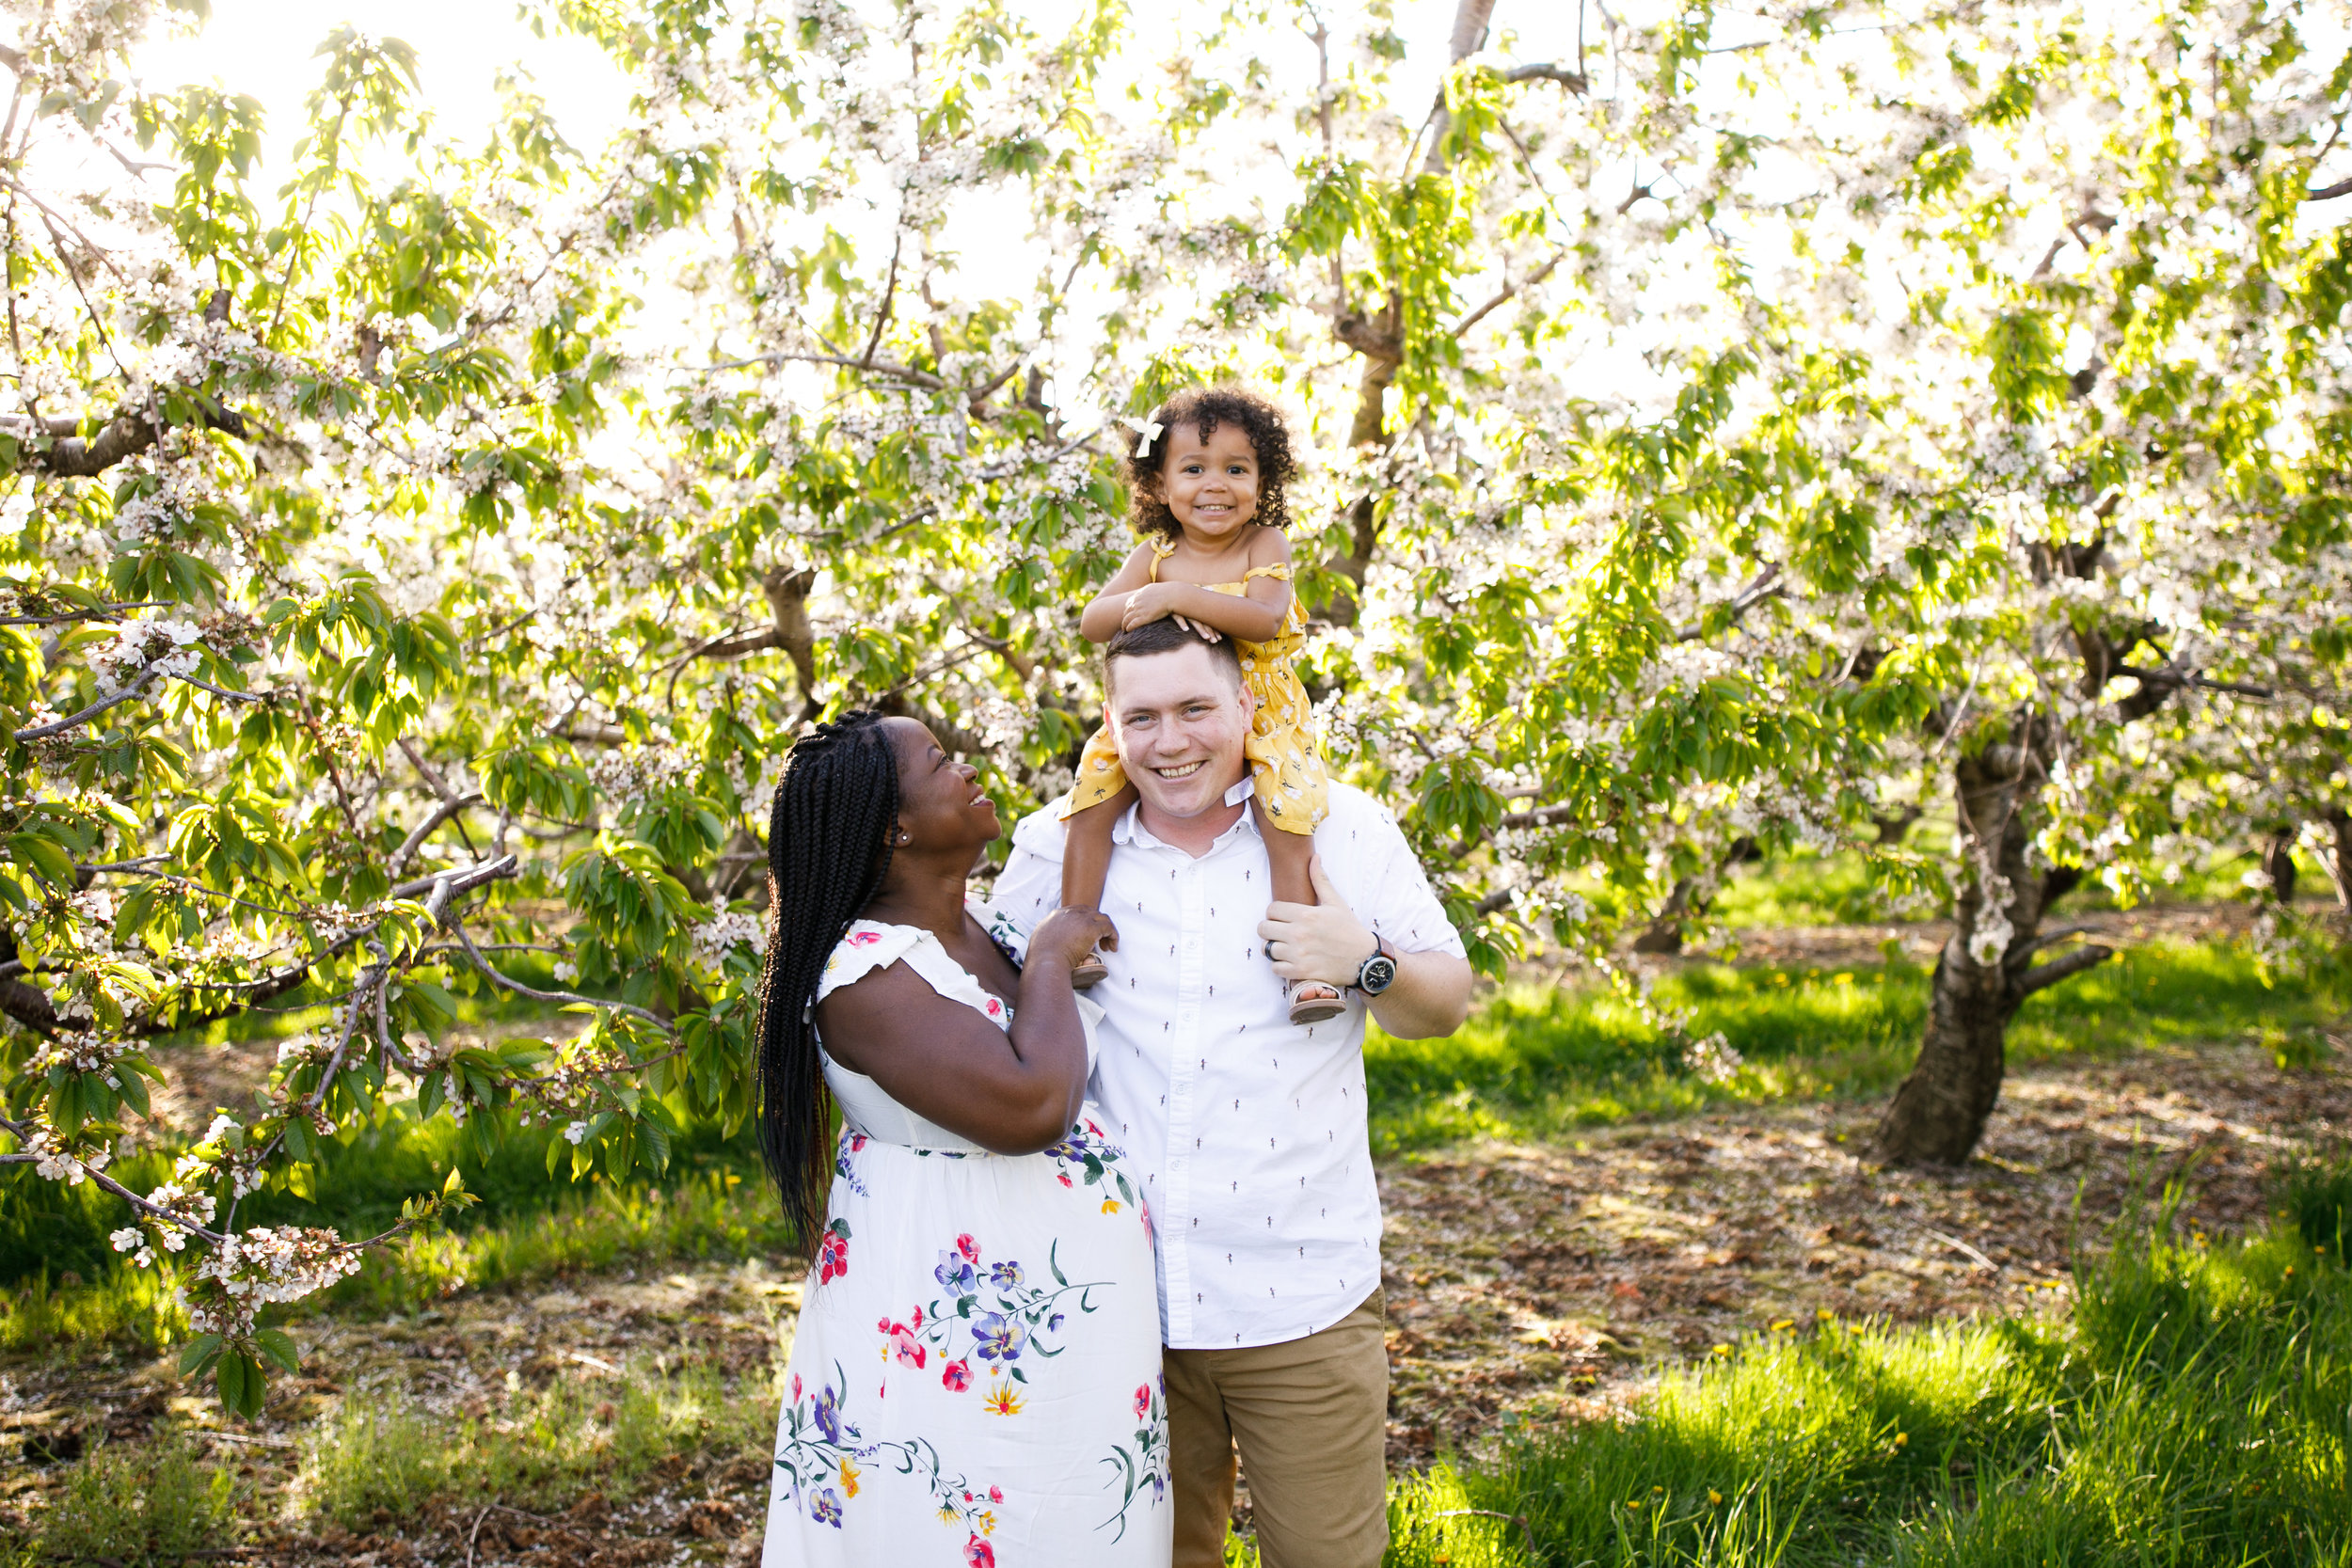 Grand Rapids family photographer - j darling photo - jessica darling - grand rapids photographer - family session - apple blossoms - sparta - michigan photographer005.jpg